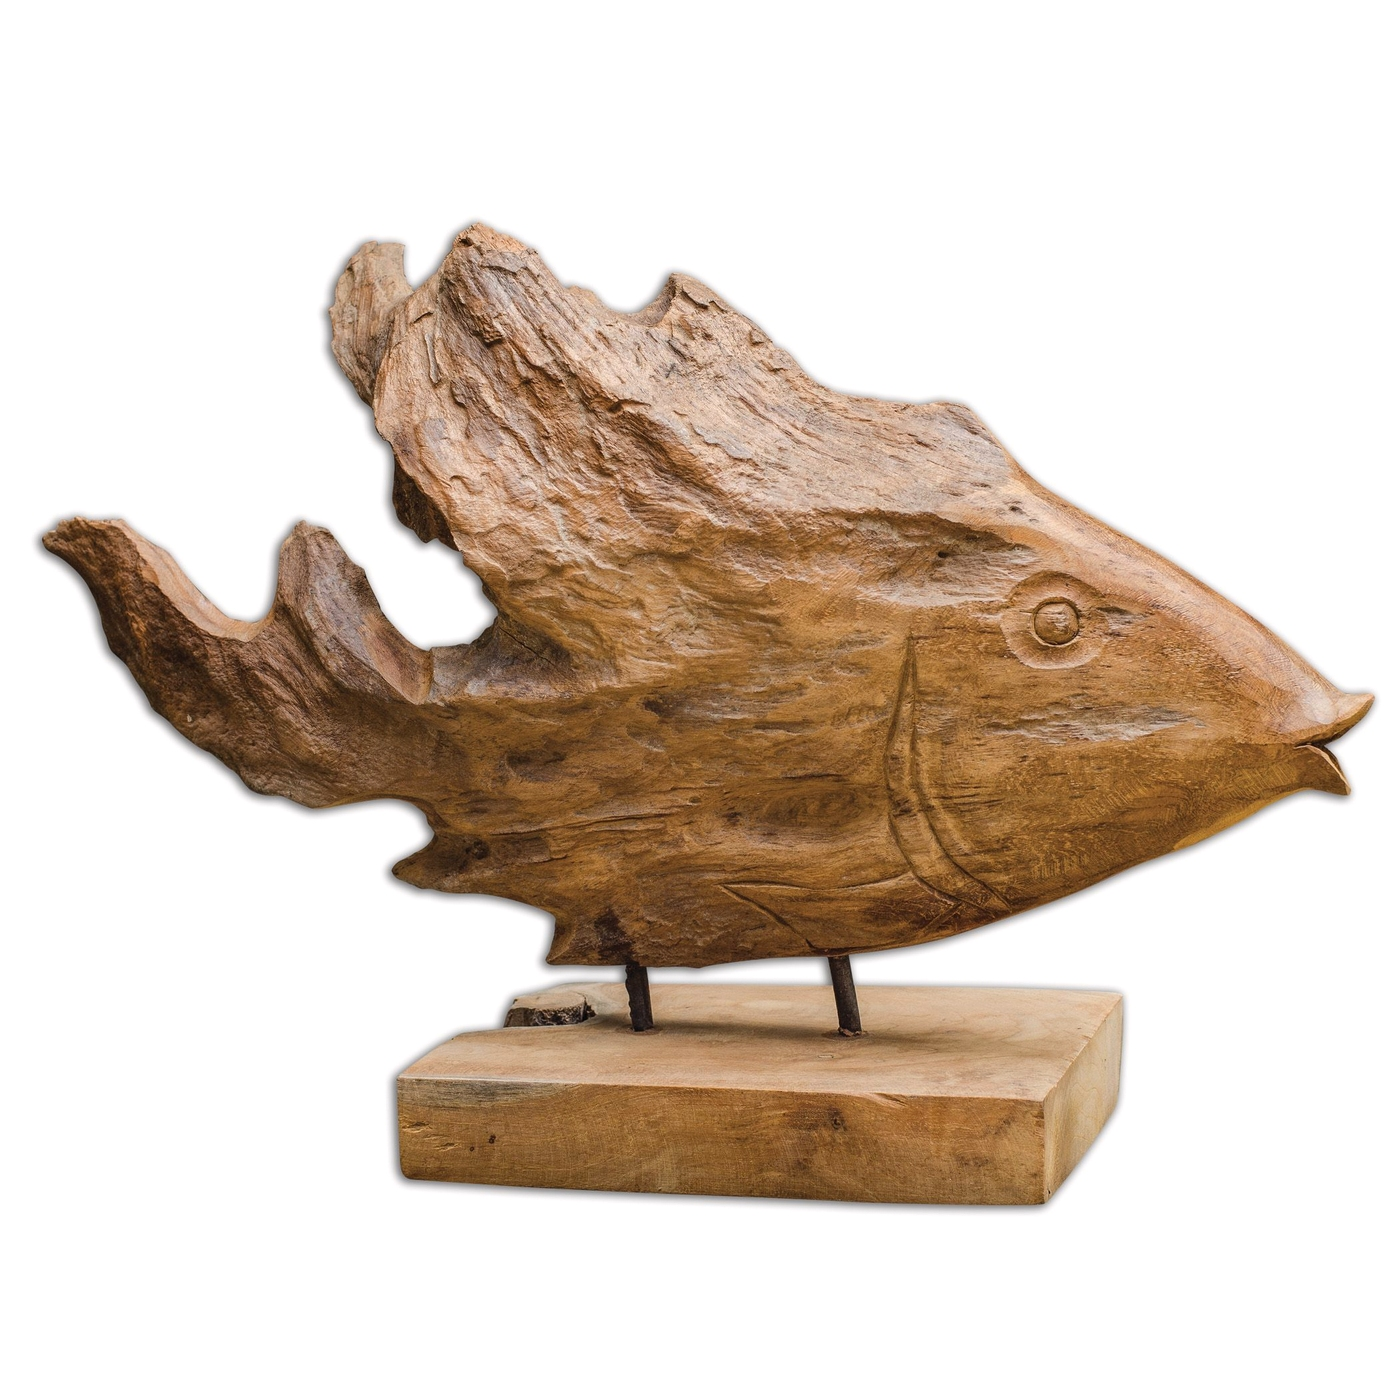 Teak country natural wood sculpture with